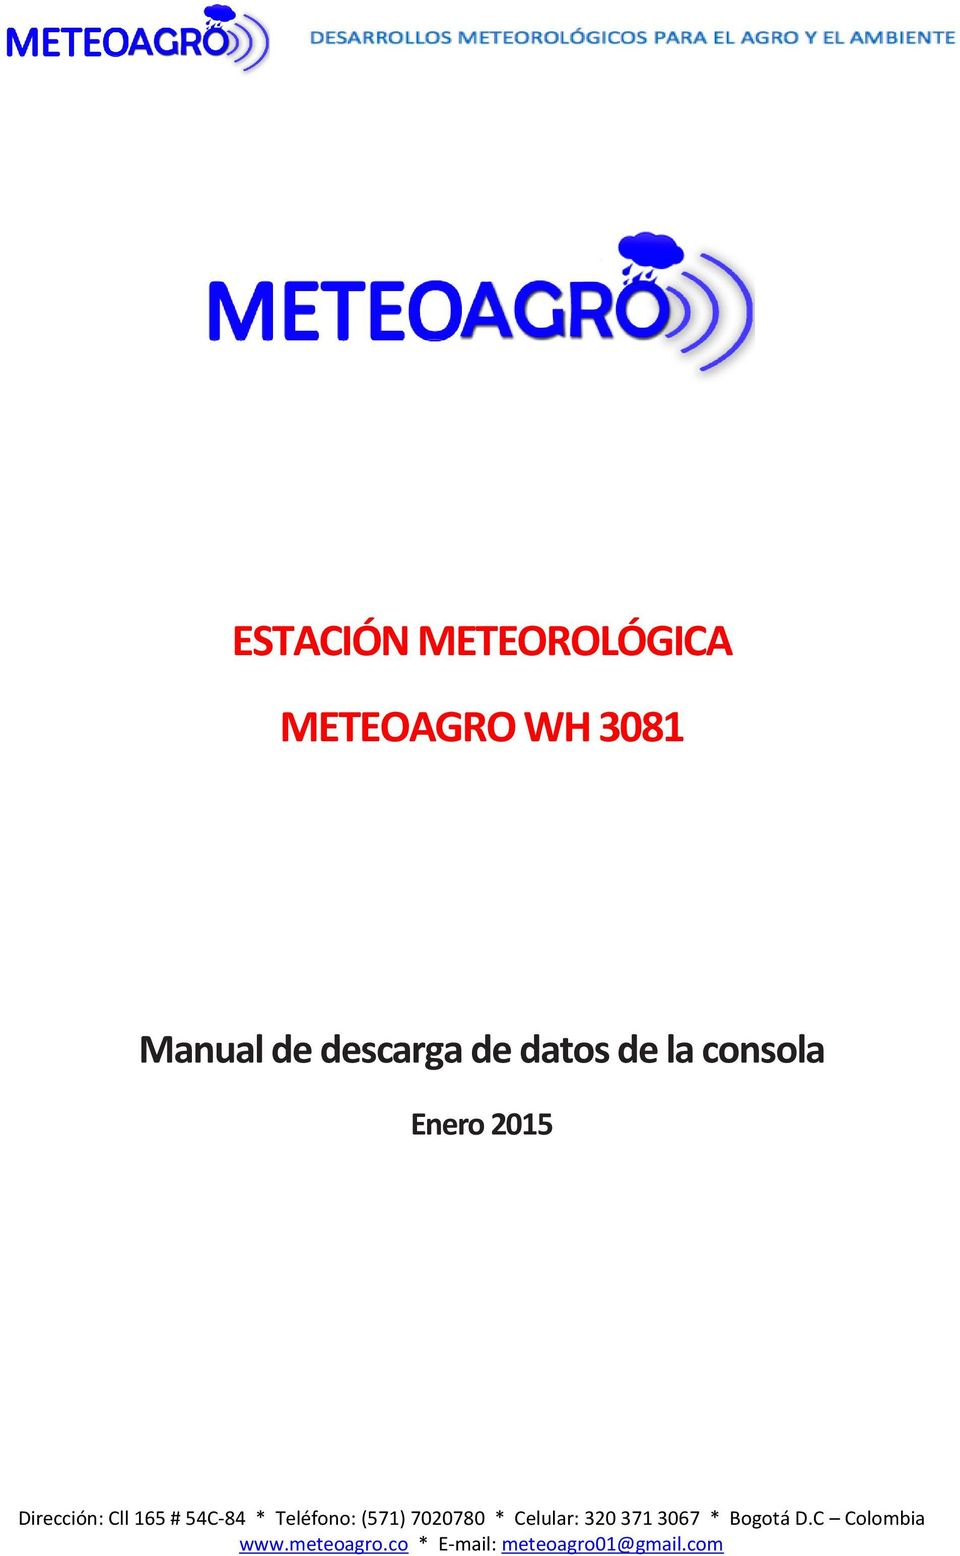 Manual de descarga de